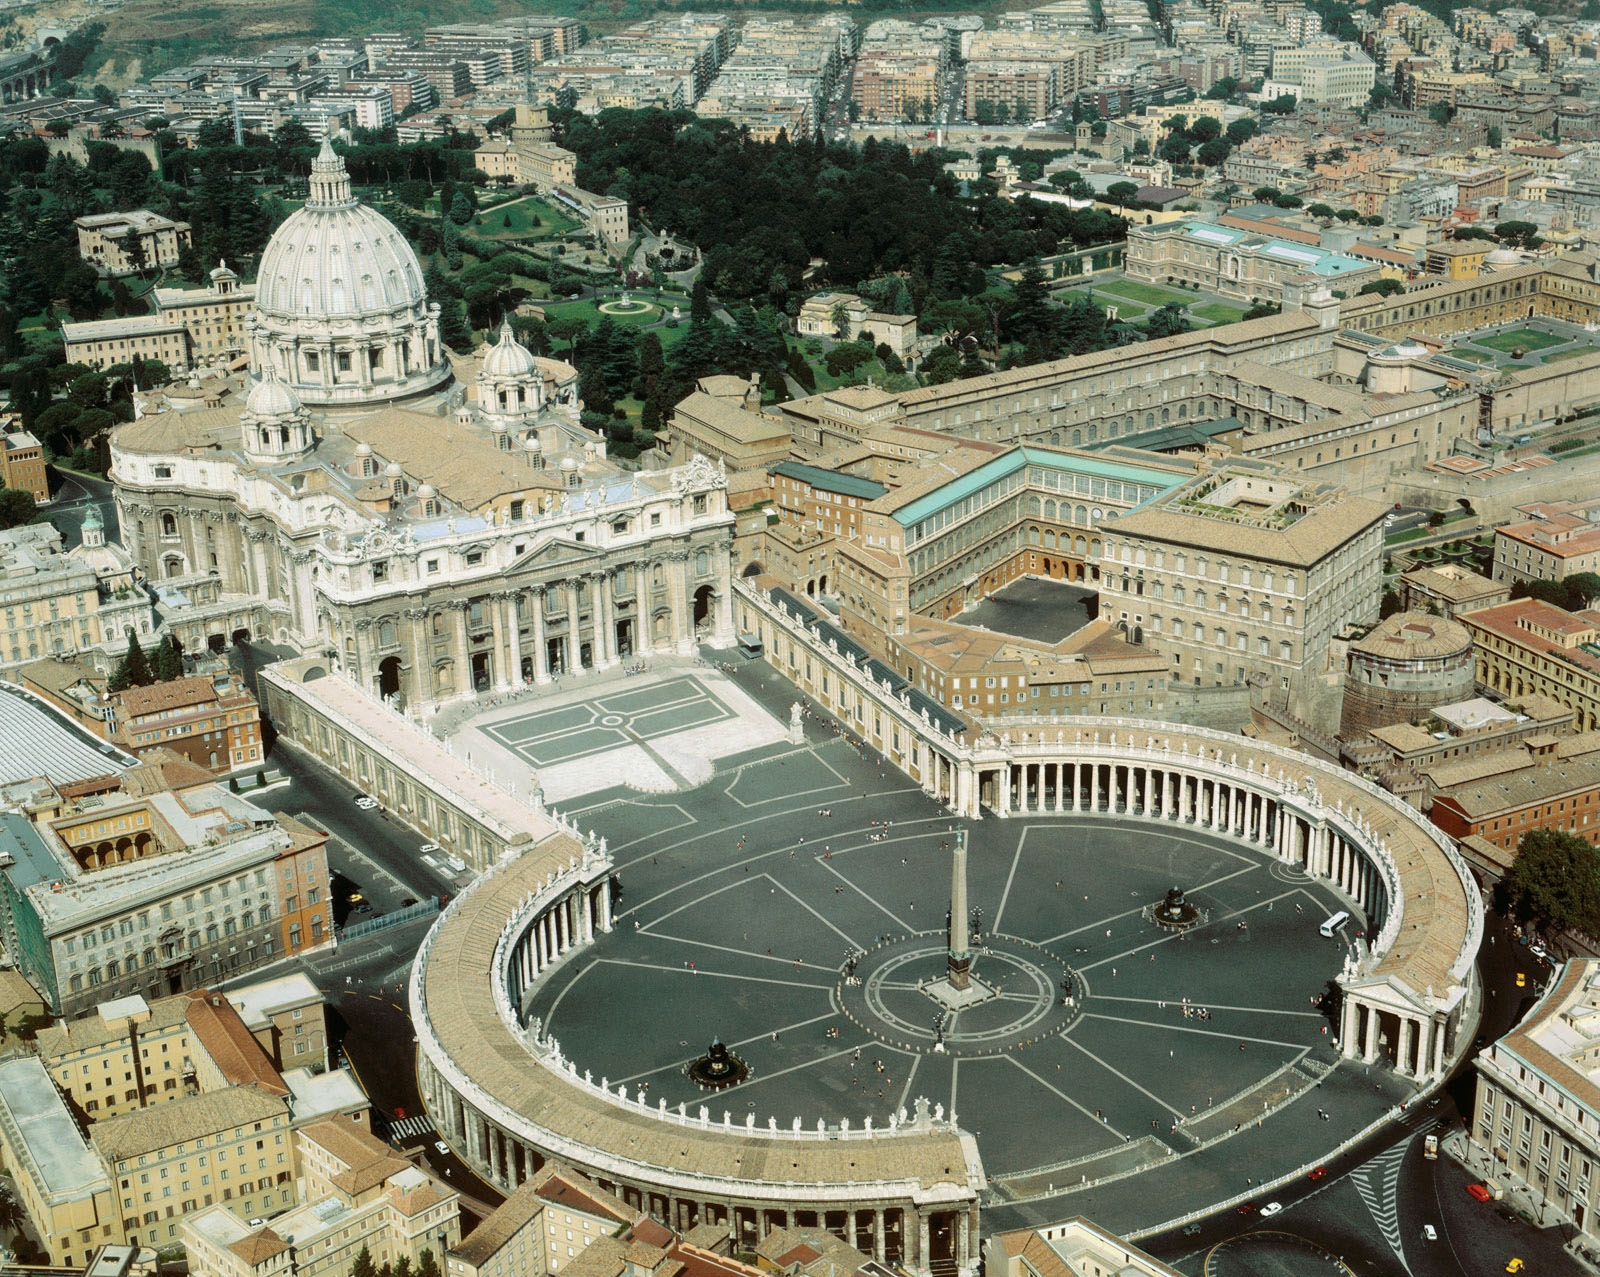 1656-1667, Vatican City, Rome, Italy --- Aerial view of St. Peter's Basilica and of St. Peter's Square in the Vatican. --- Image by © Alinari Archives/CORBIS